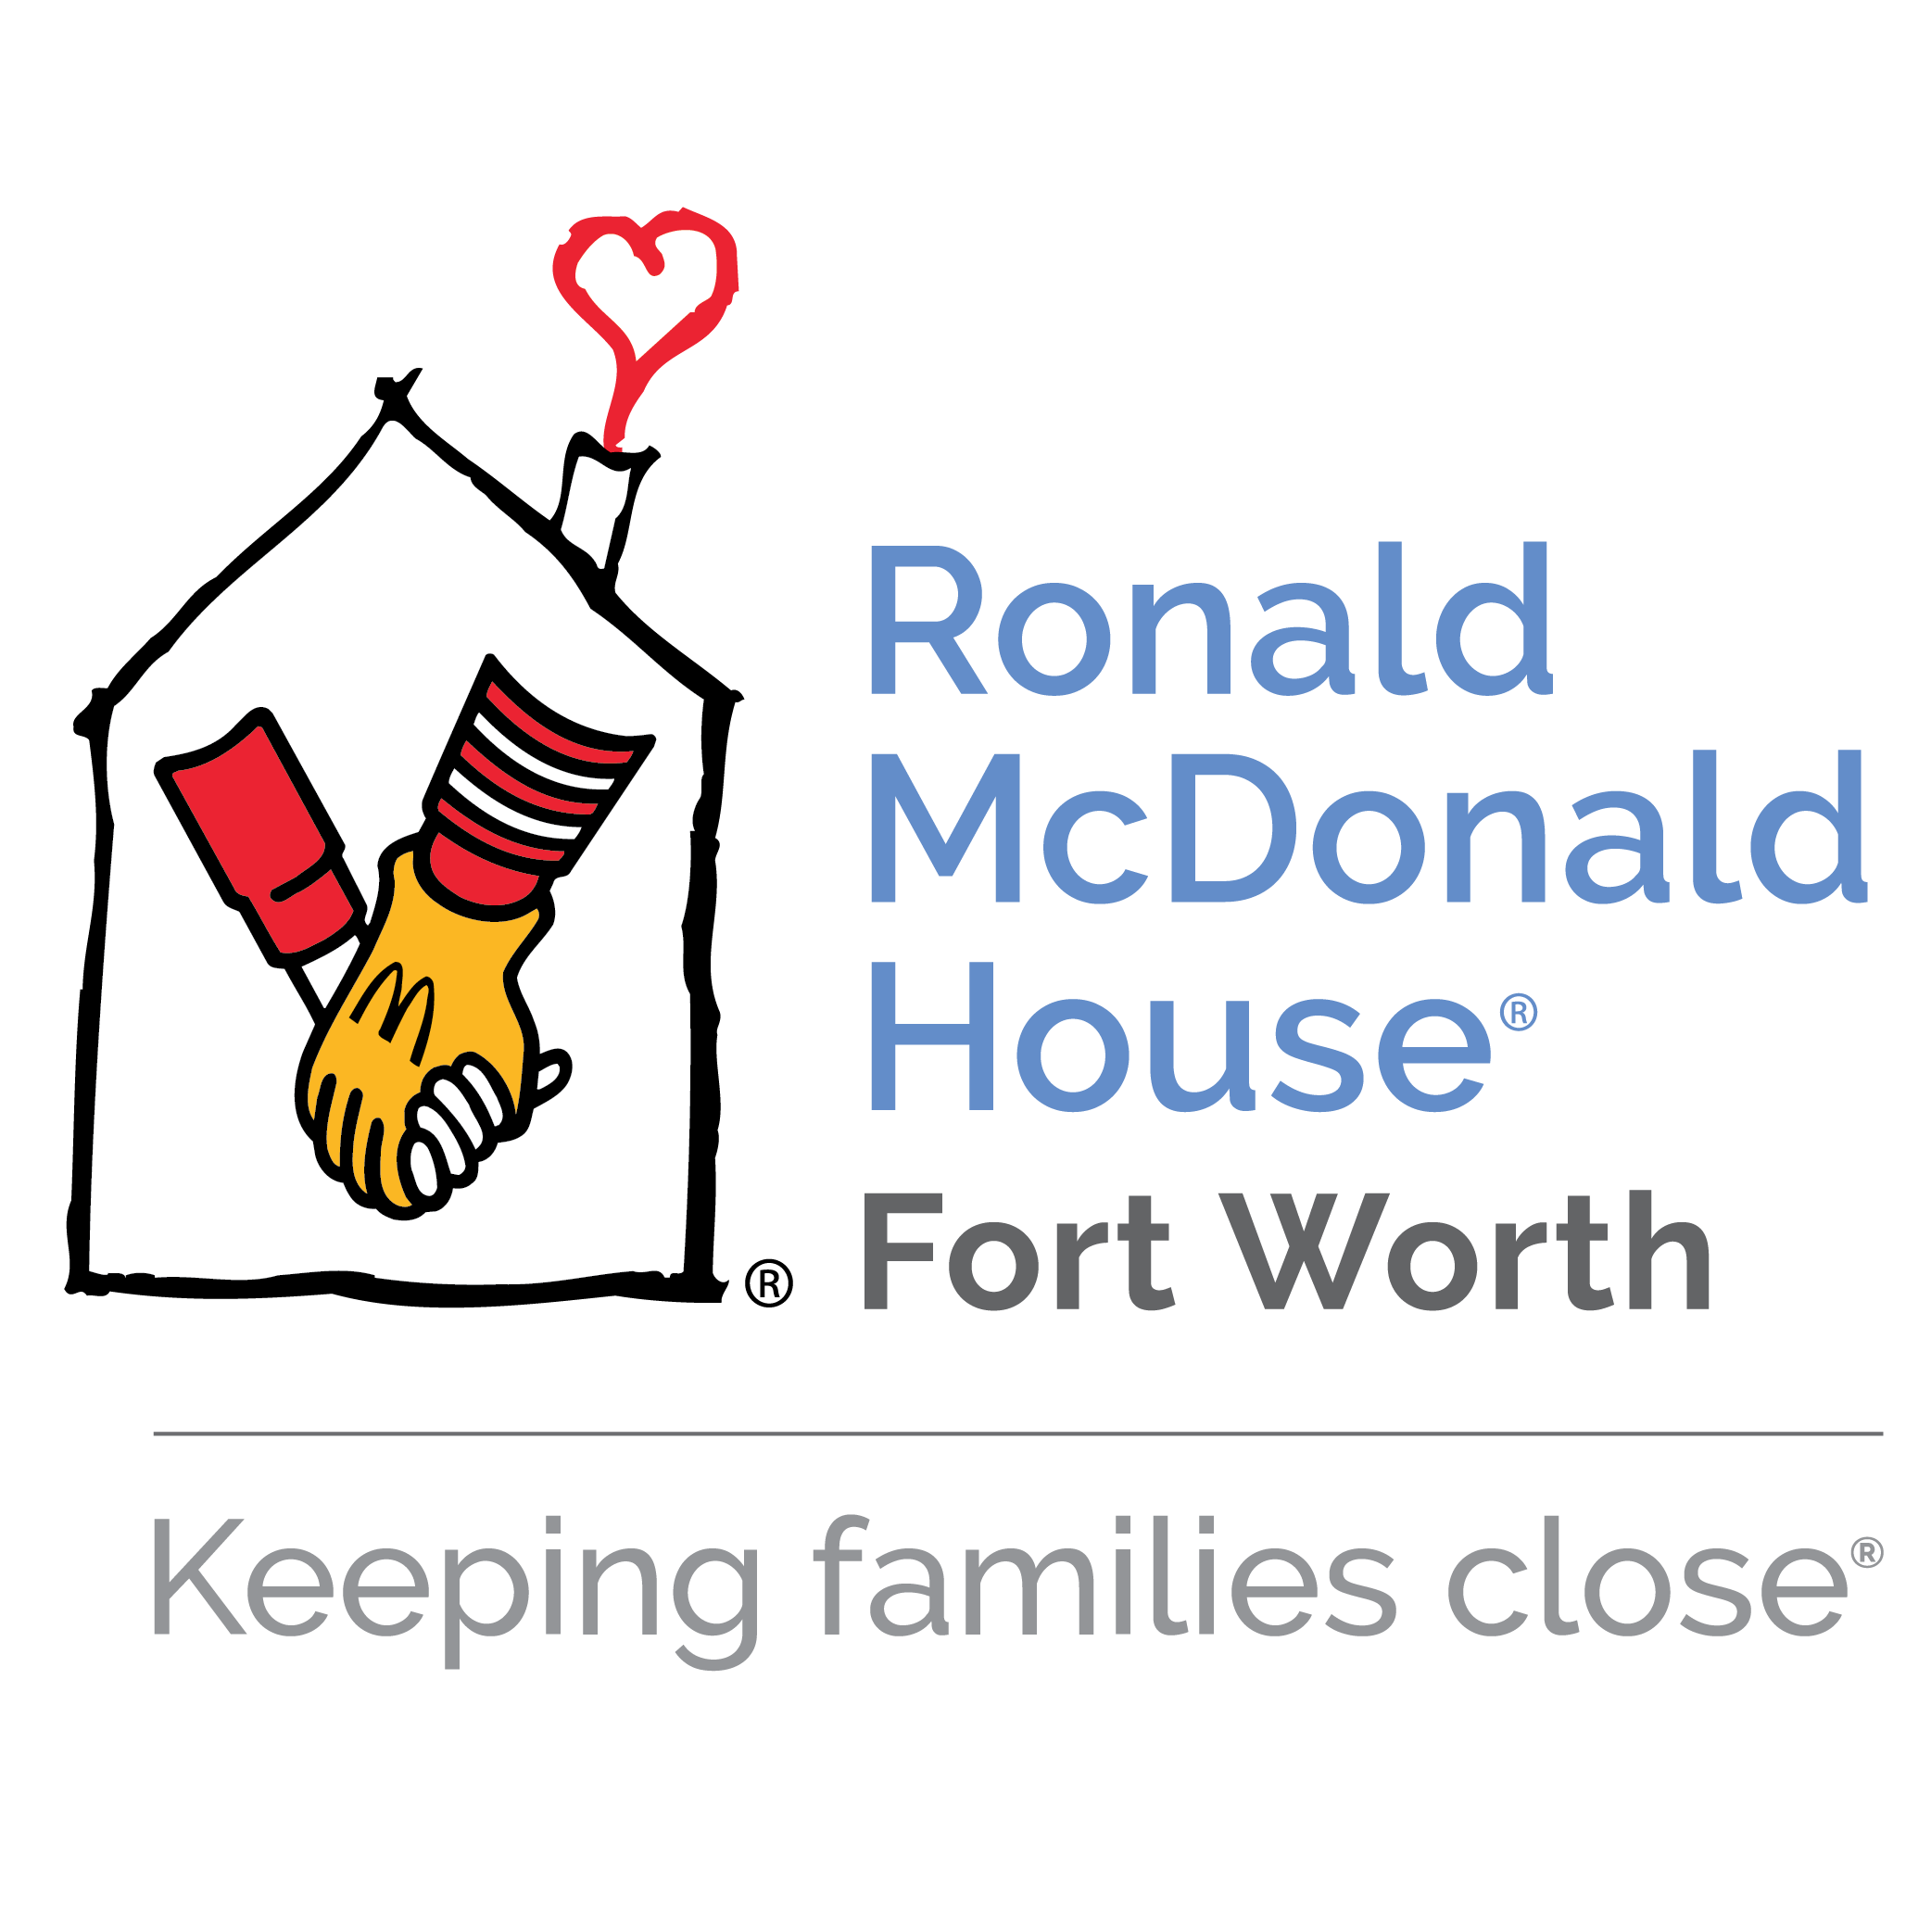 Ronald McDonald House Fort Worth Strittmatter Wealth Management Group Fort Worth Texas Charitable Giving Community Conscious Socially Responsible